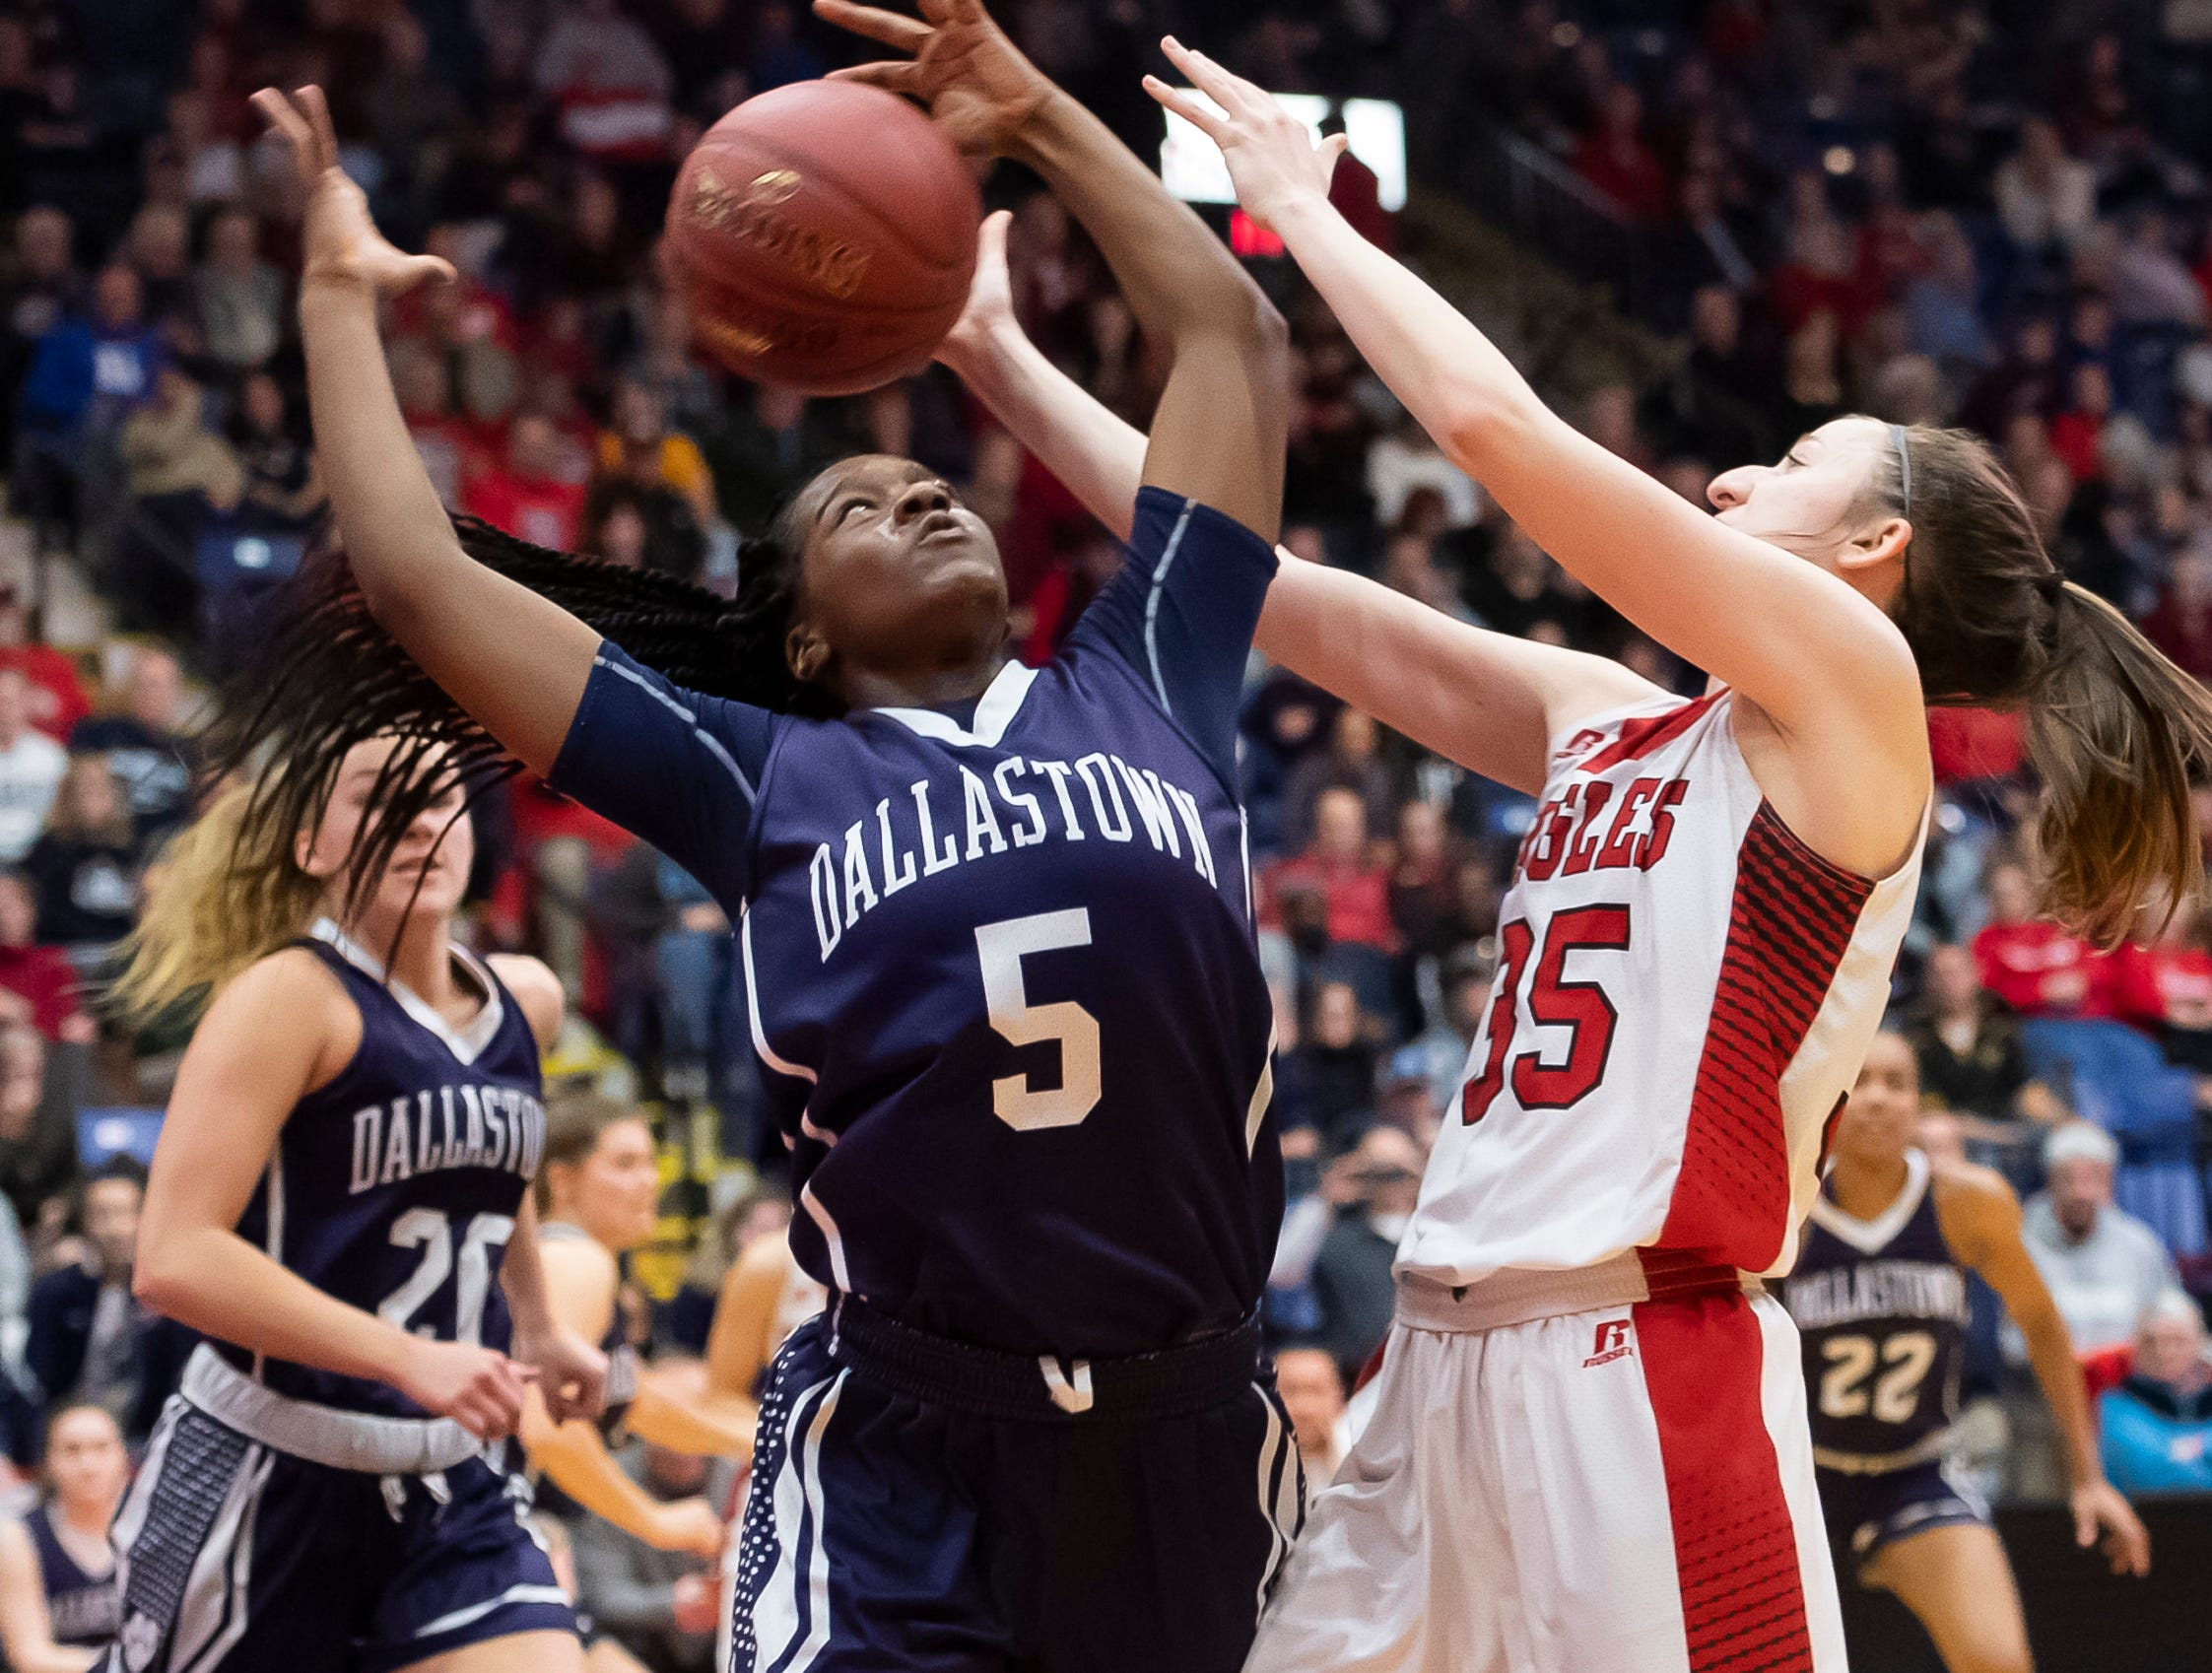 Dallastown's D'Shantae Edward (5) and Cumberland Valley's Kennedy Kuffa vie for a rebound during the District 3 6A girls championship game at the Santander Arena in Reading, Pa., Friday, March 1, 2019. Dallastown fell 33-27.